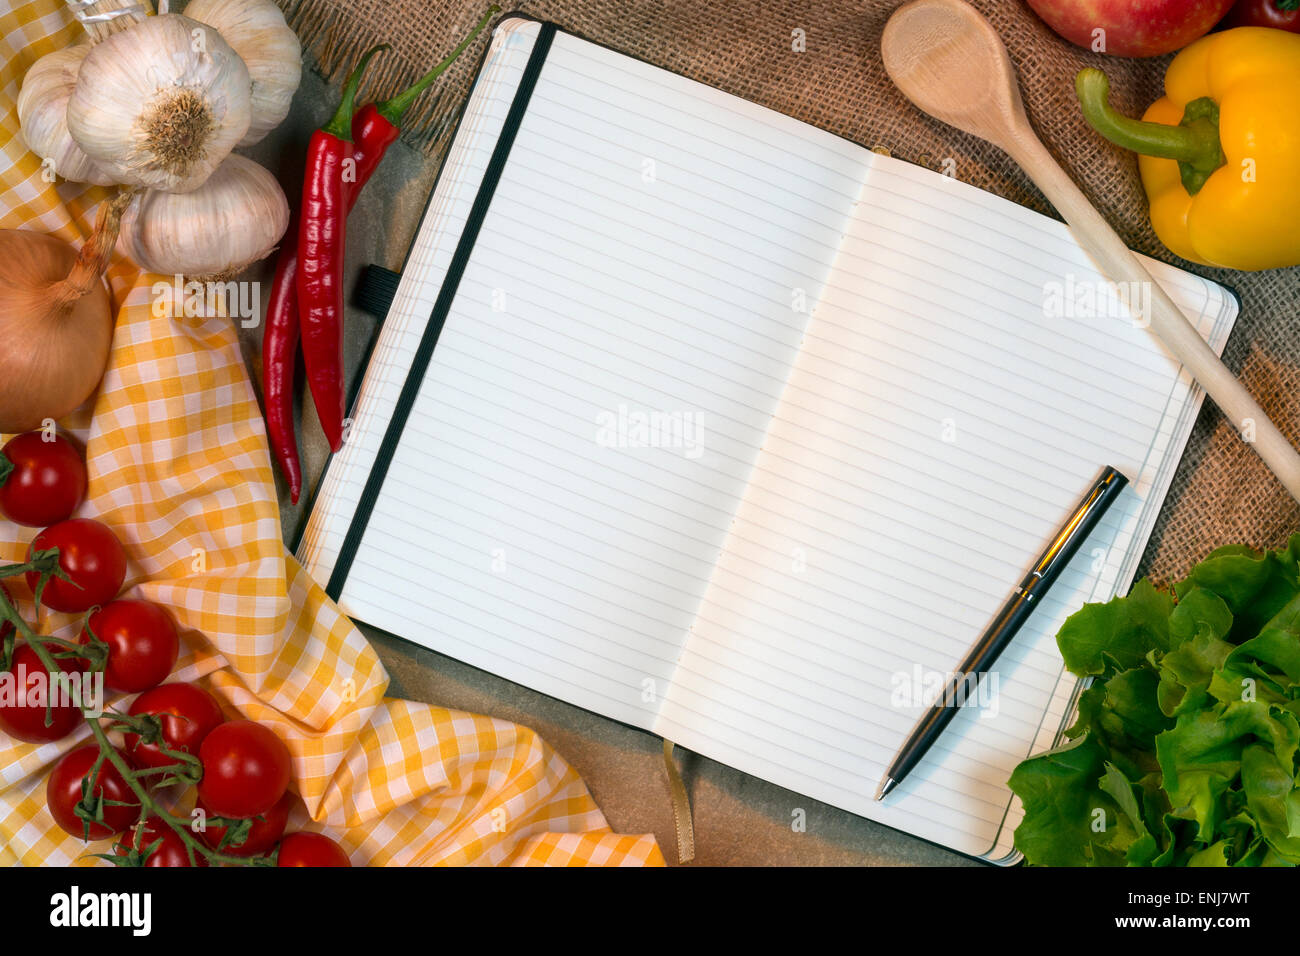 Blank recipe book pages (space for text) with cooking ingredients and utensils - Stock Image